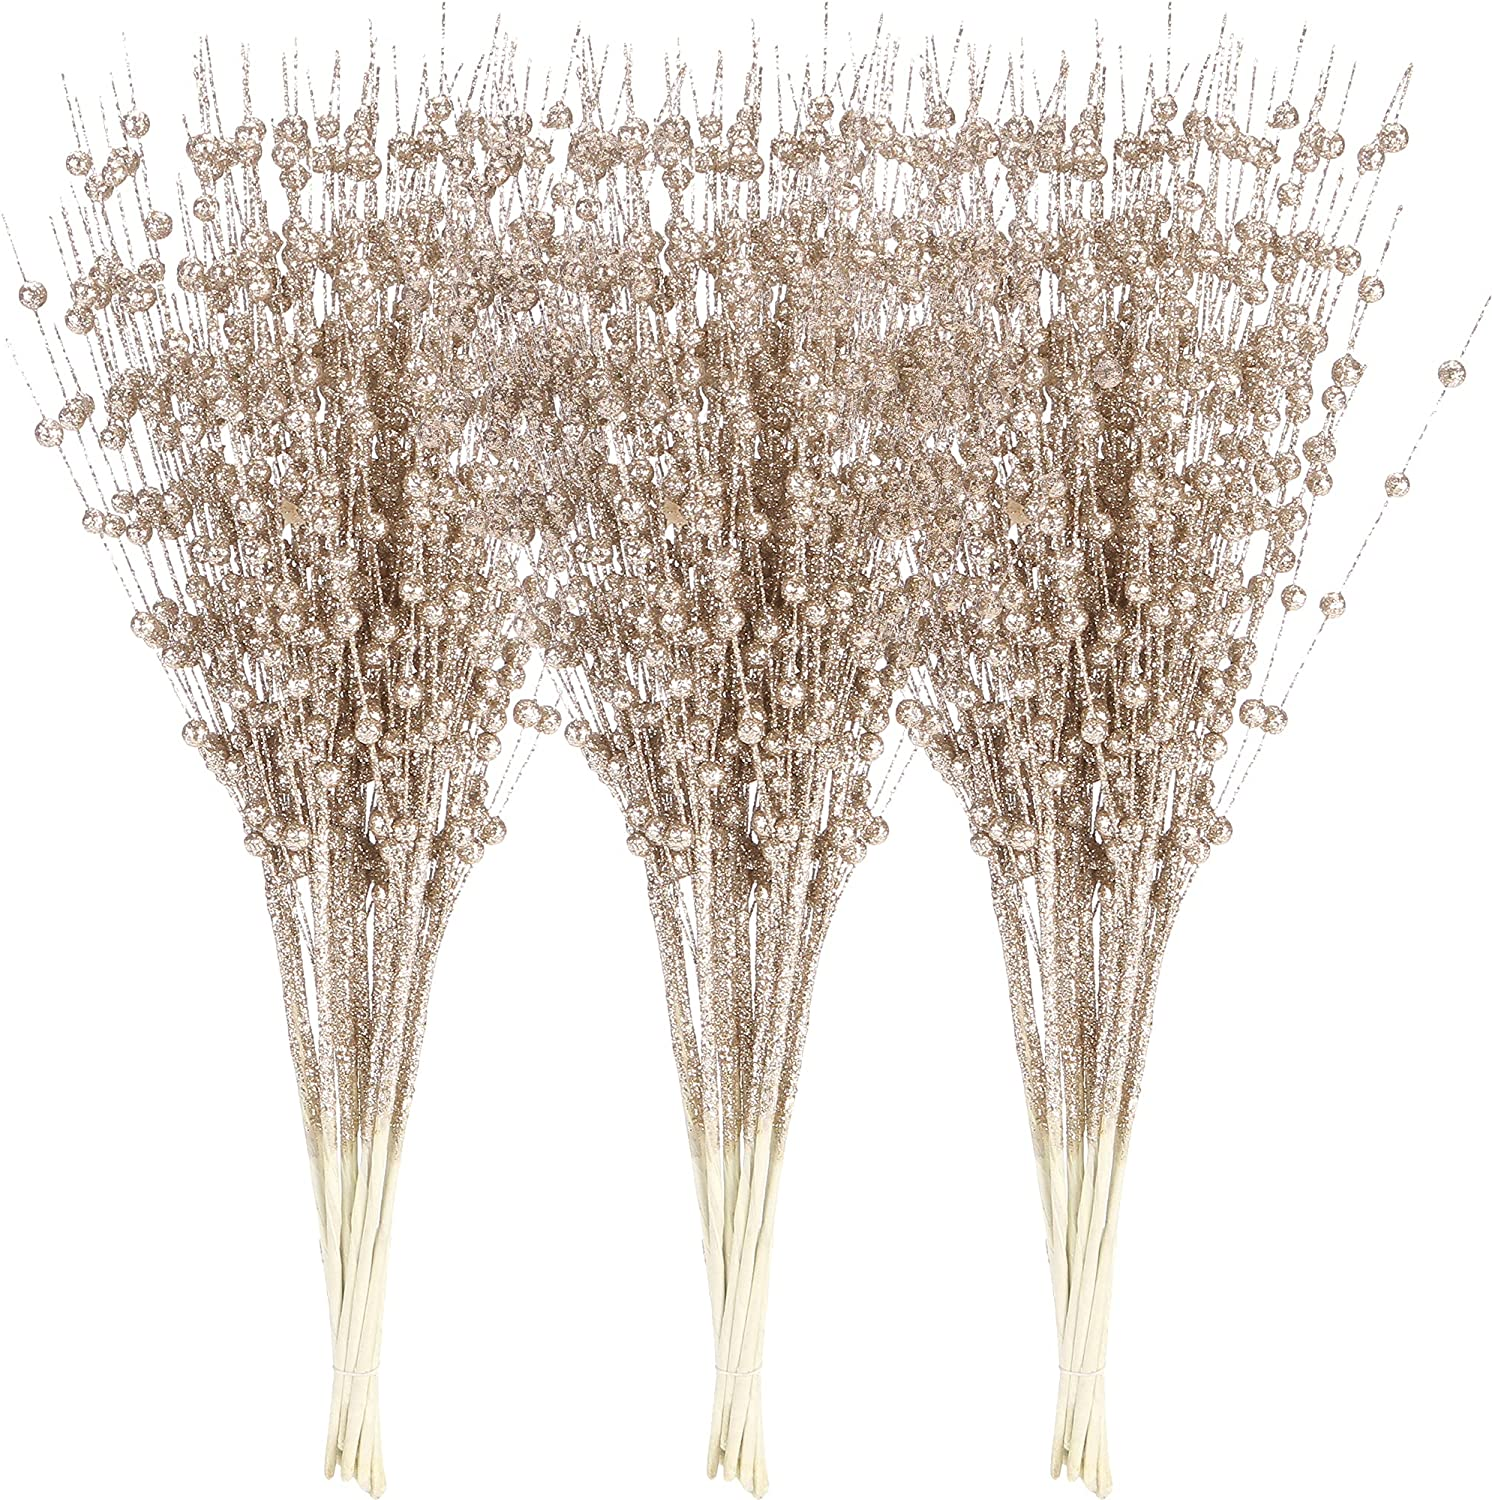 Sea Team 24-Pack Artificial Glitter Berry Stem Ornaments, Decorative Bead Sticks, Glittery Twigs, Picks, Branches for Christmas Tree, Small Vase, Holiday, Wedding, Party (17 Inches, Champagne)